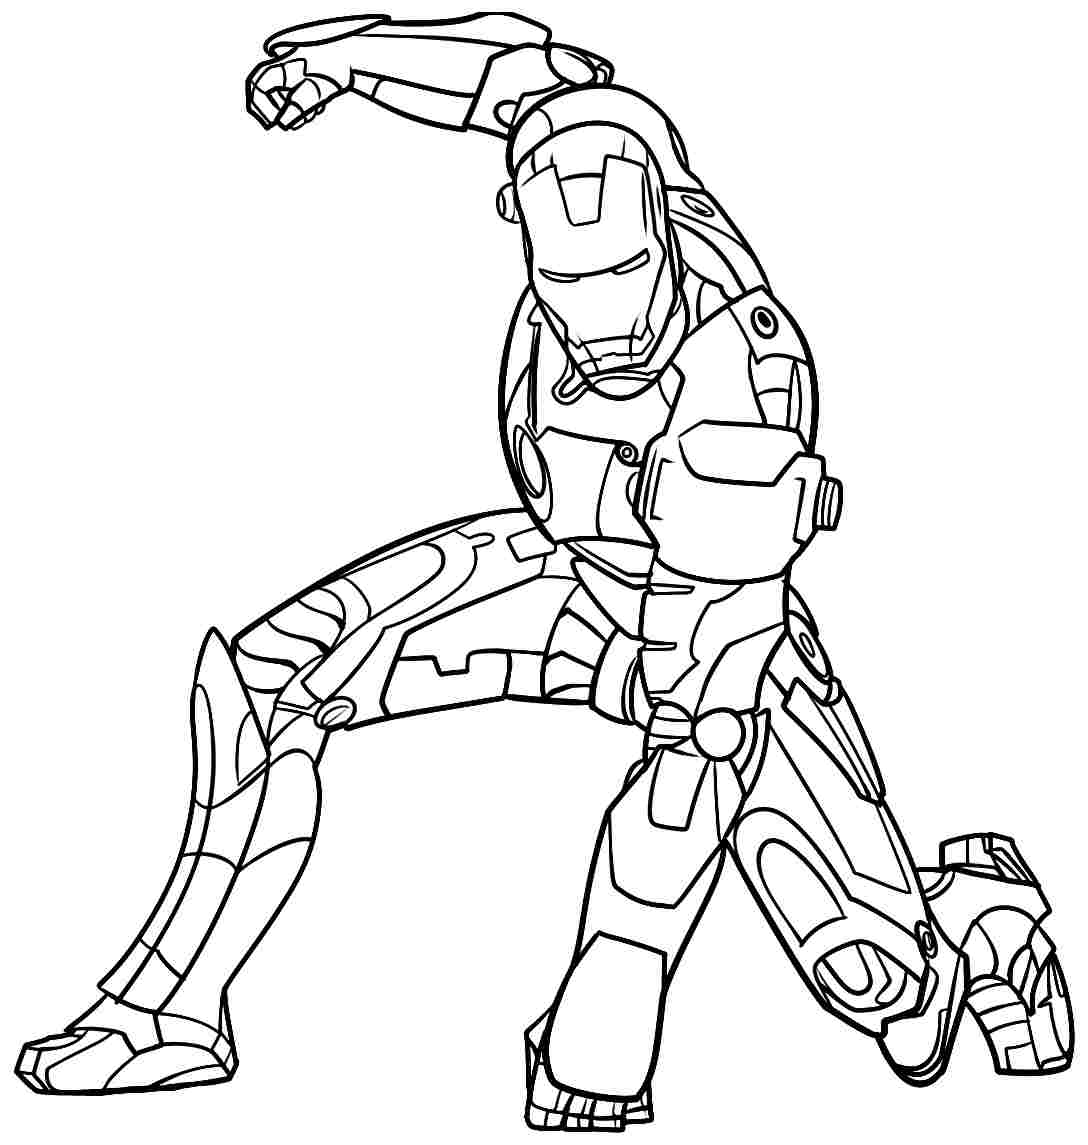 coloring iron man free printable iron man coloring pages for kids iron man coloring